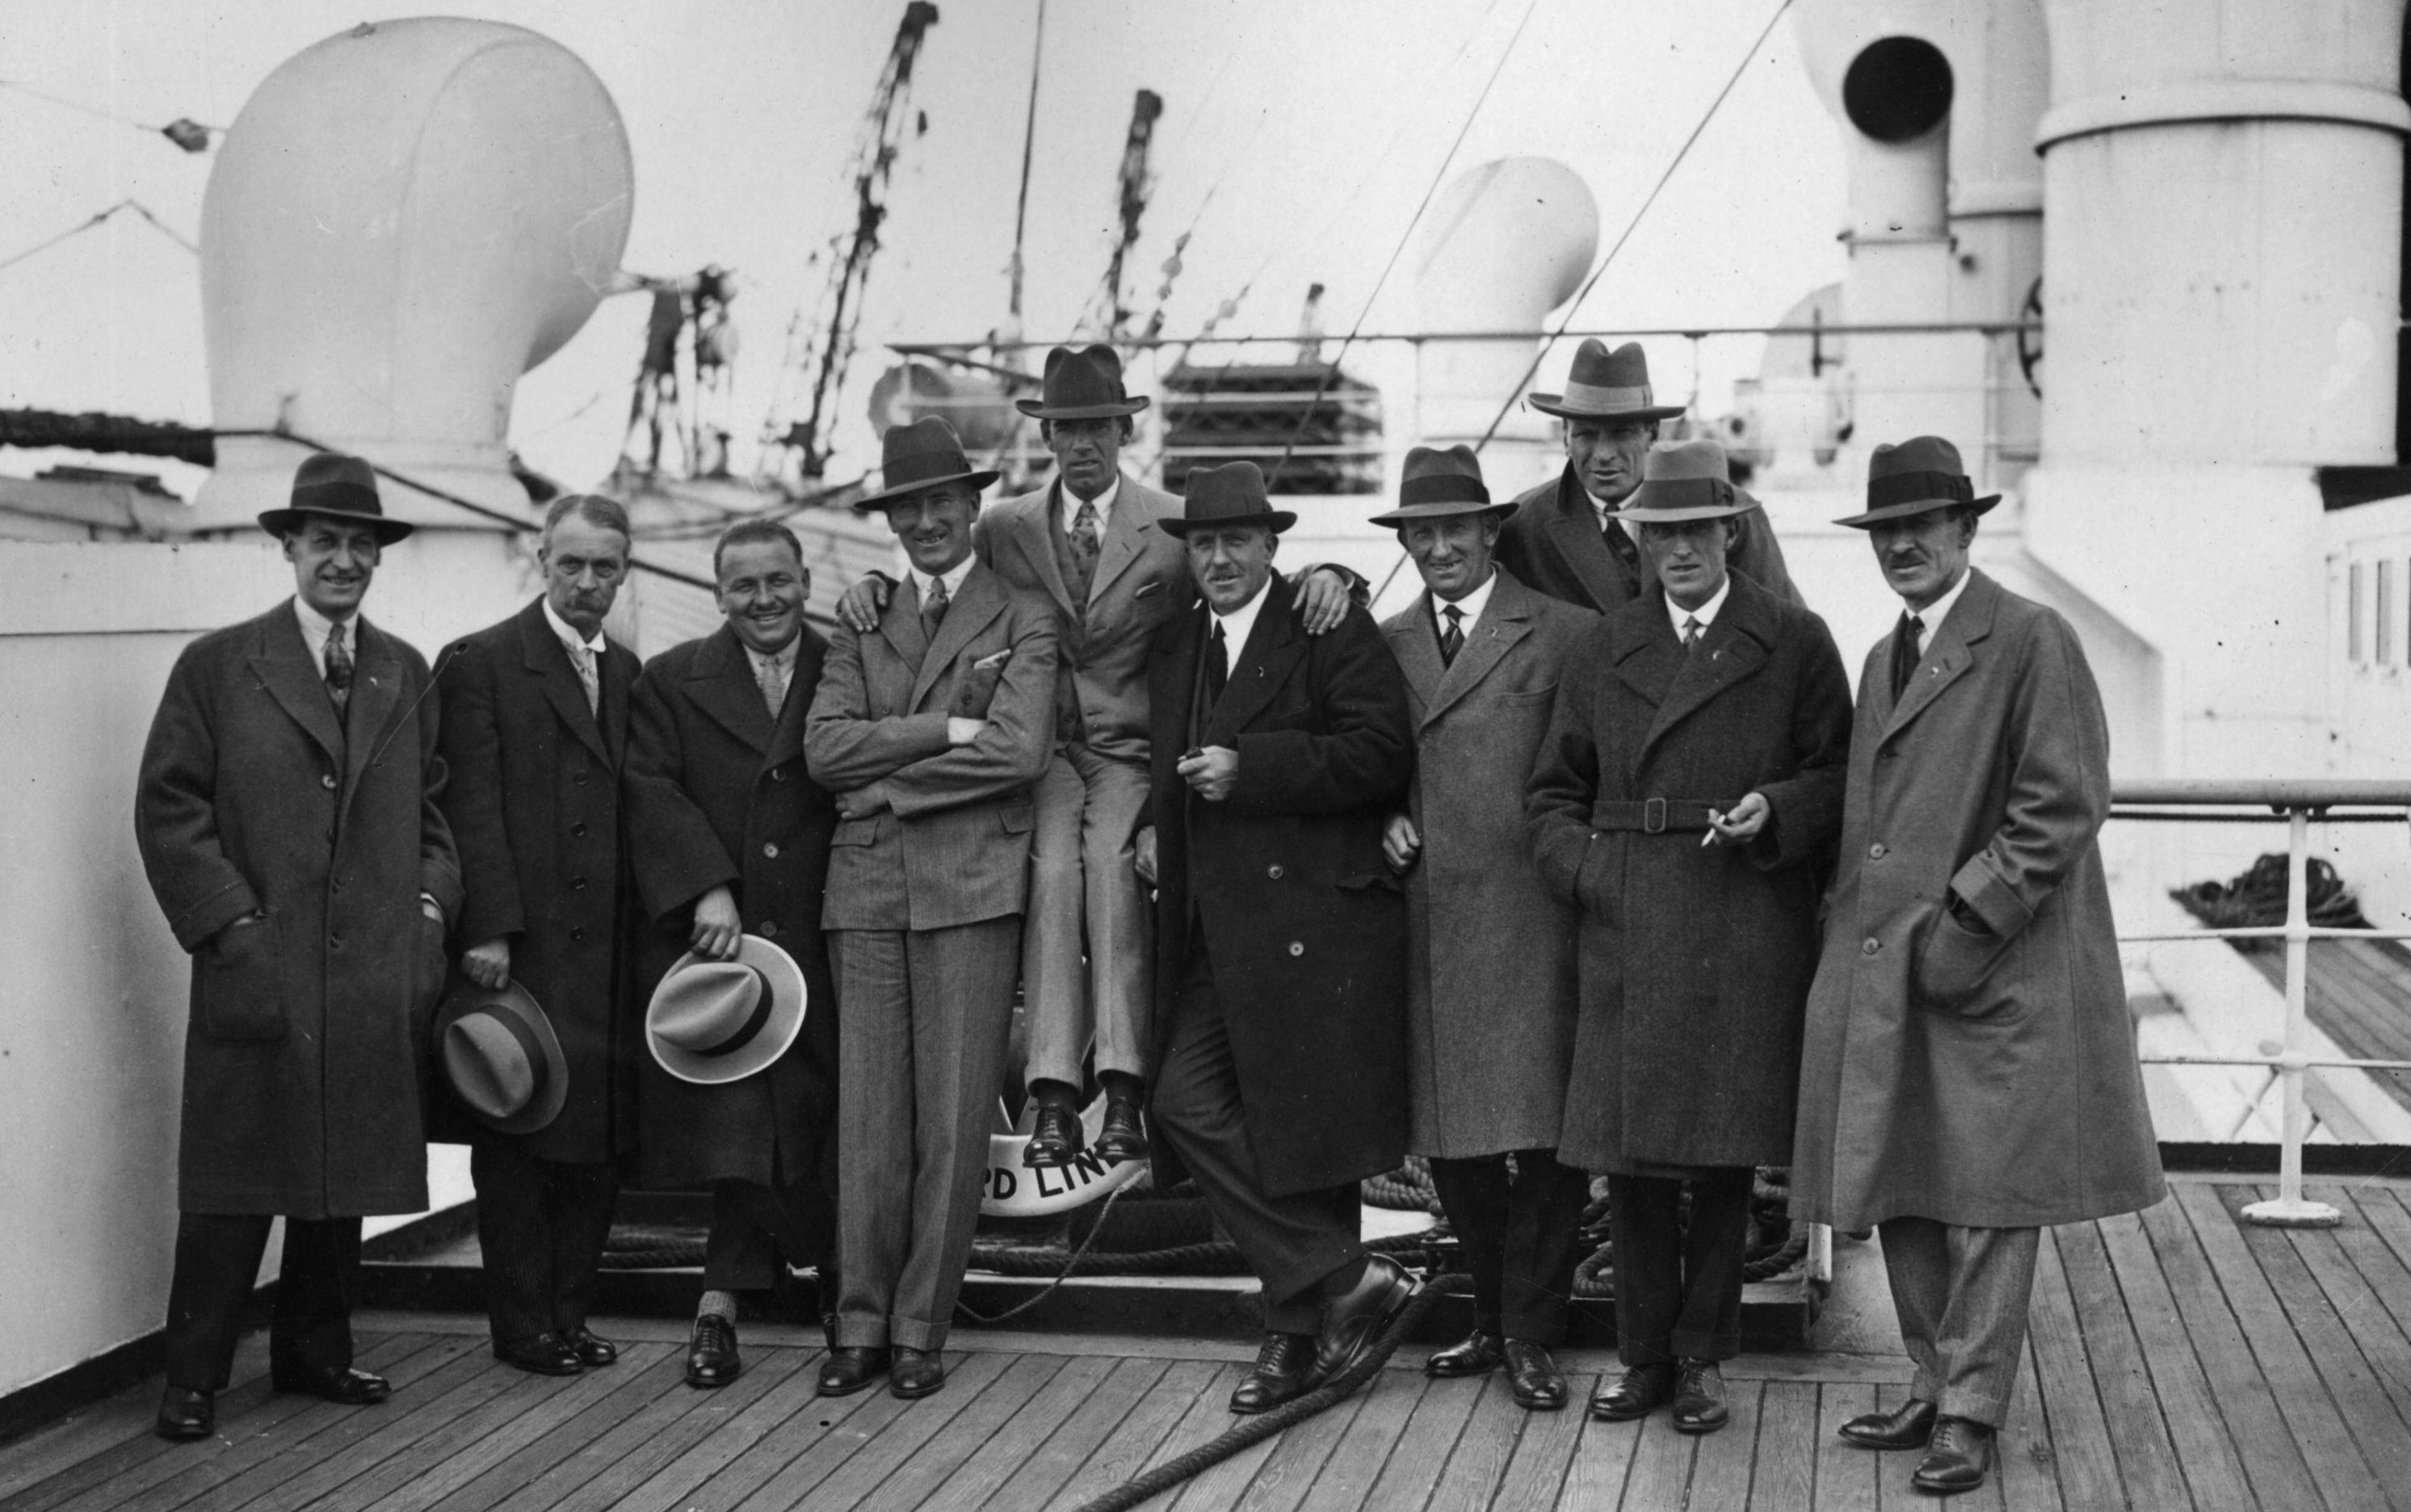 The British Ryder Cup team on Cunard Liner Aquitania on their way to America for the first tournament in 1927